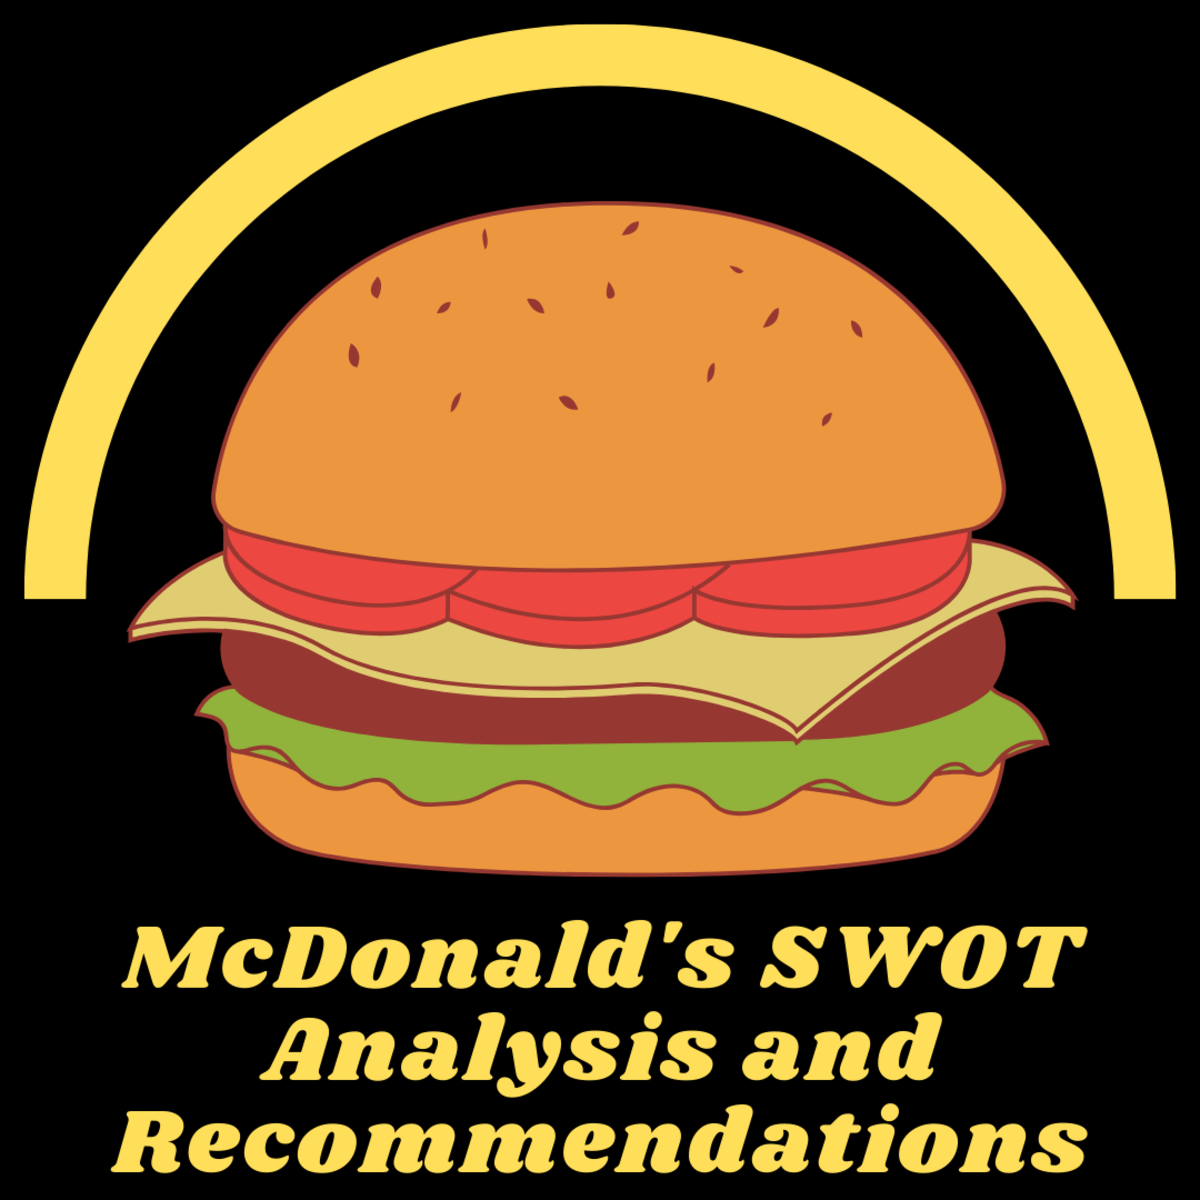 Read on to learn how the McDonald's brand operates.